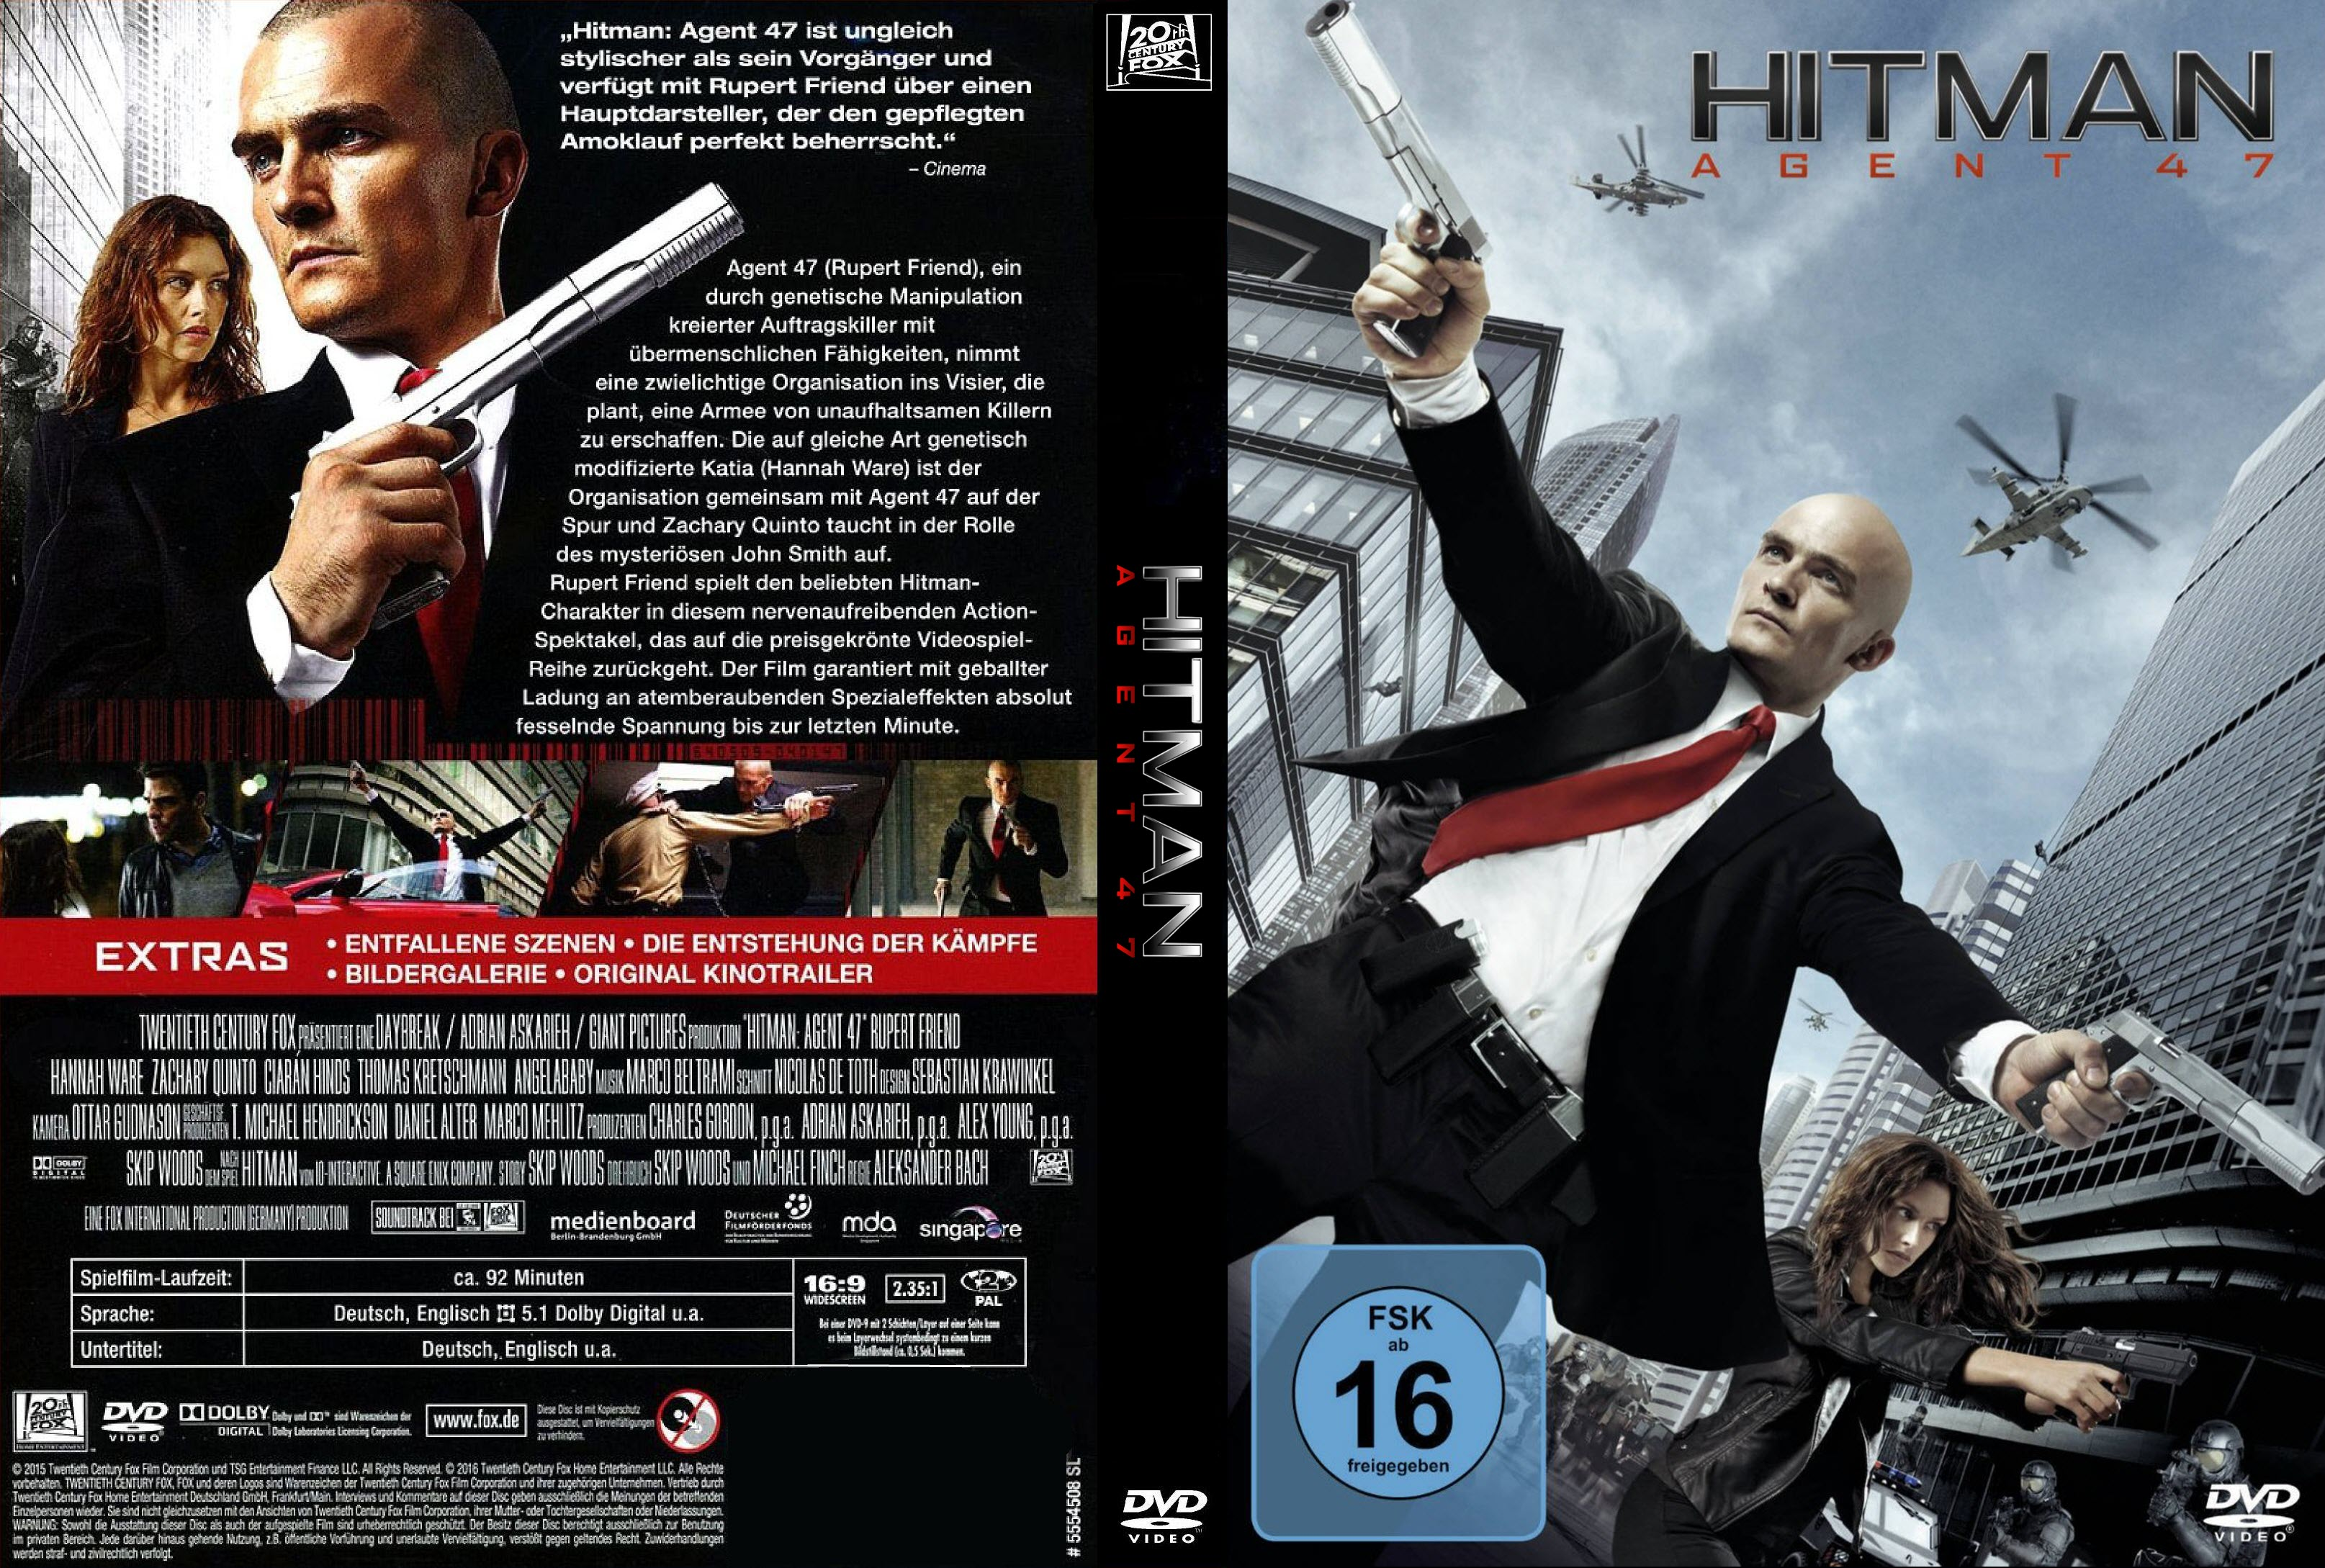 Hitman Agent 47 Hot Girl Hd Wallpaper